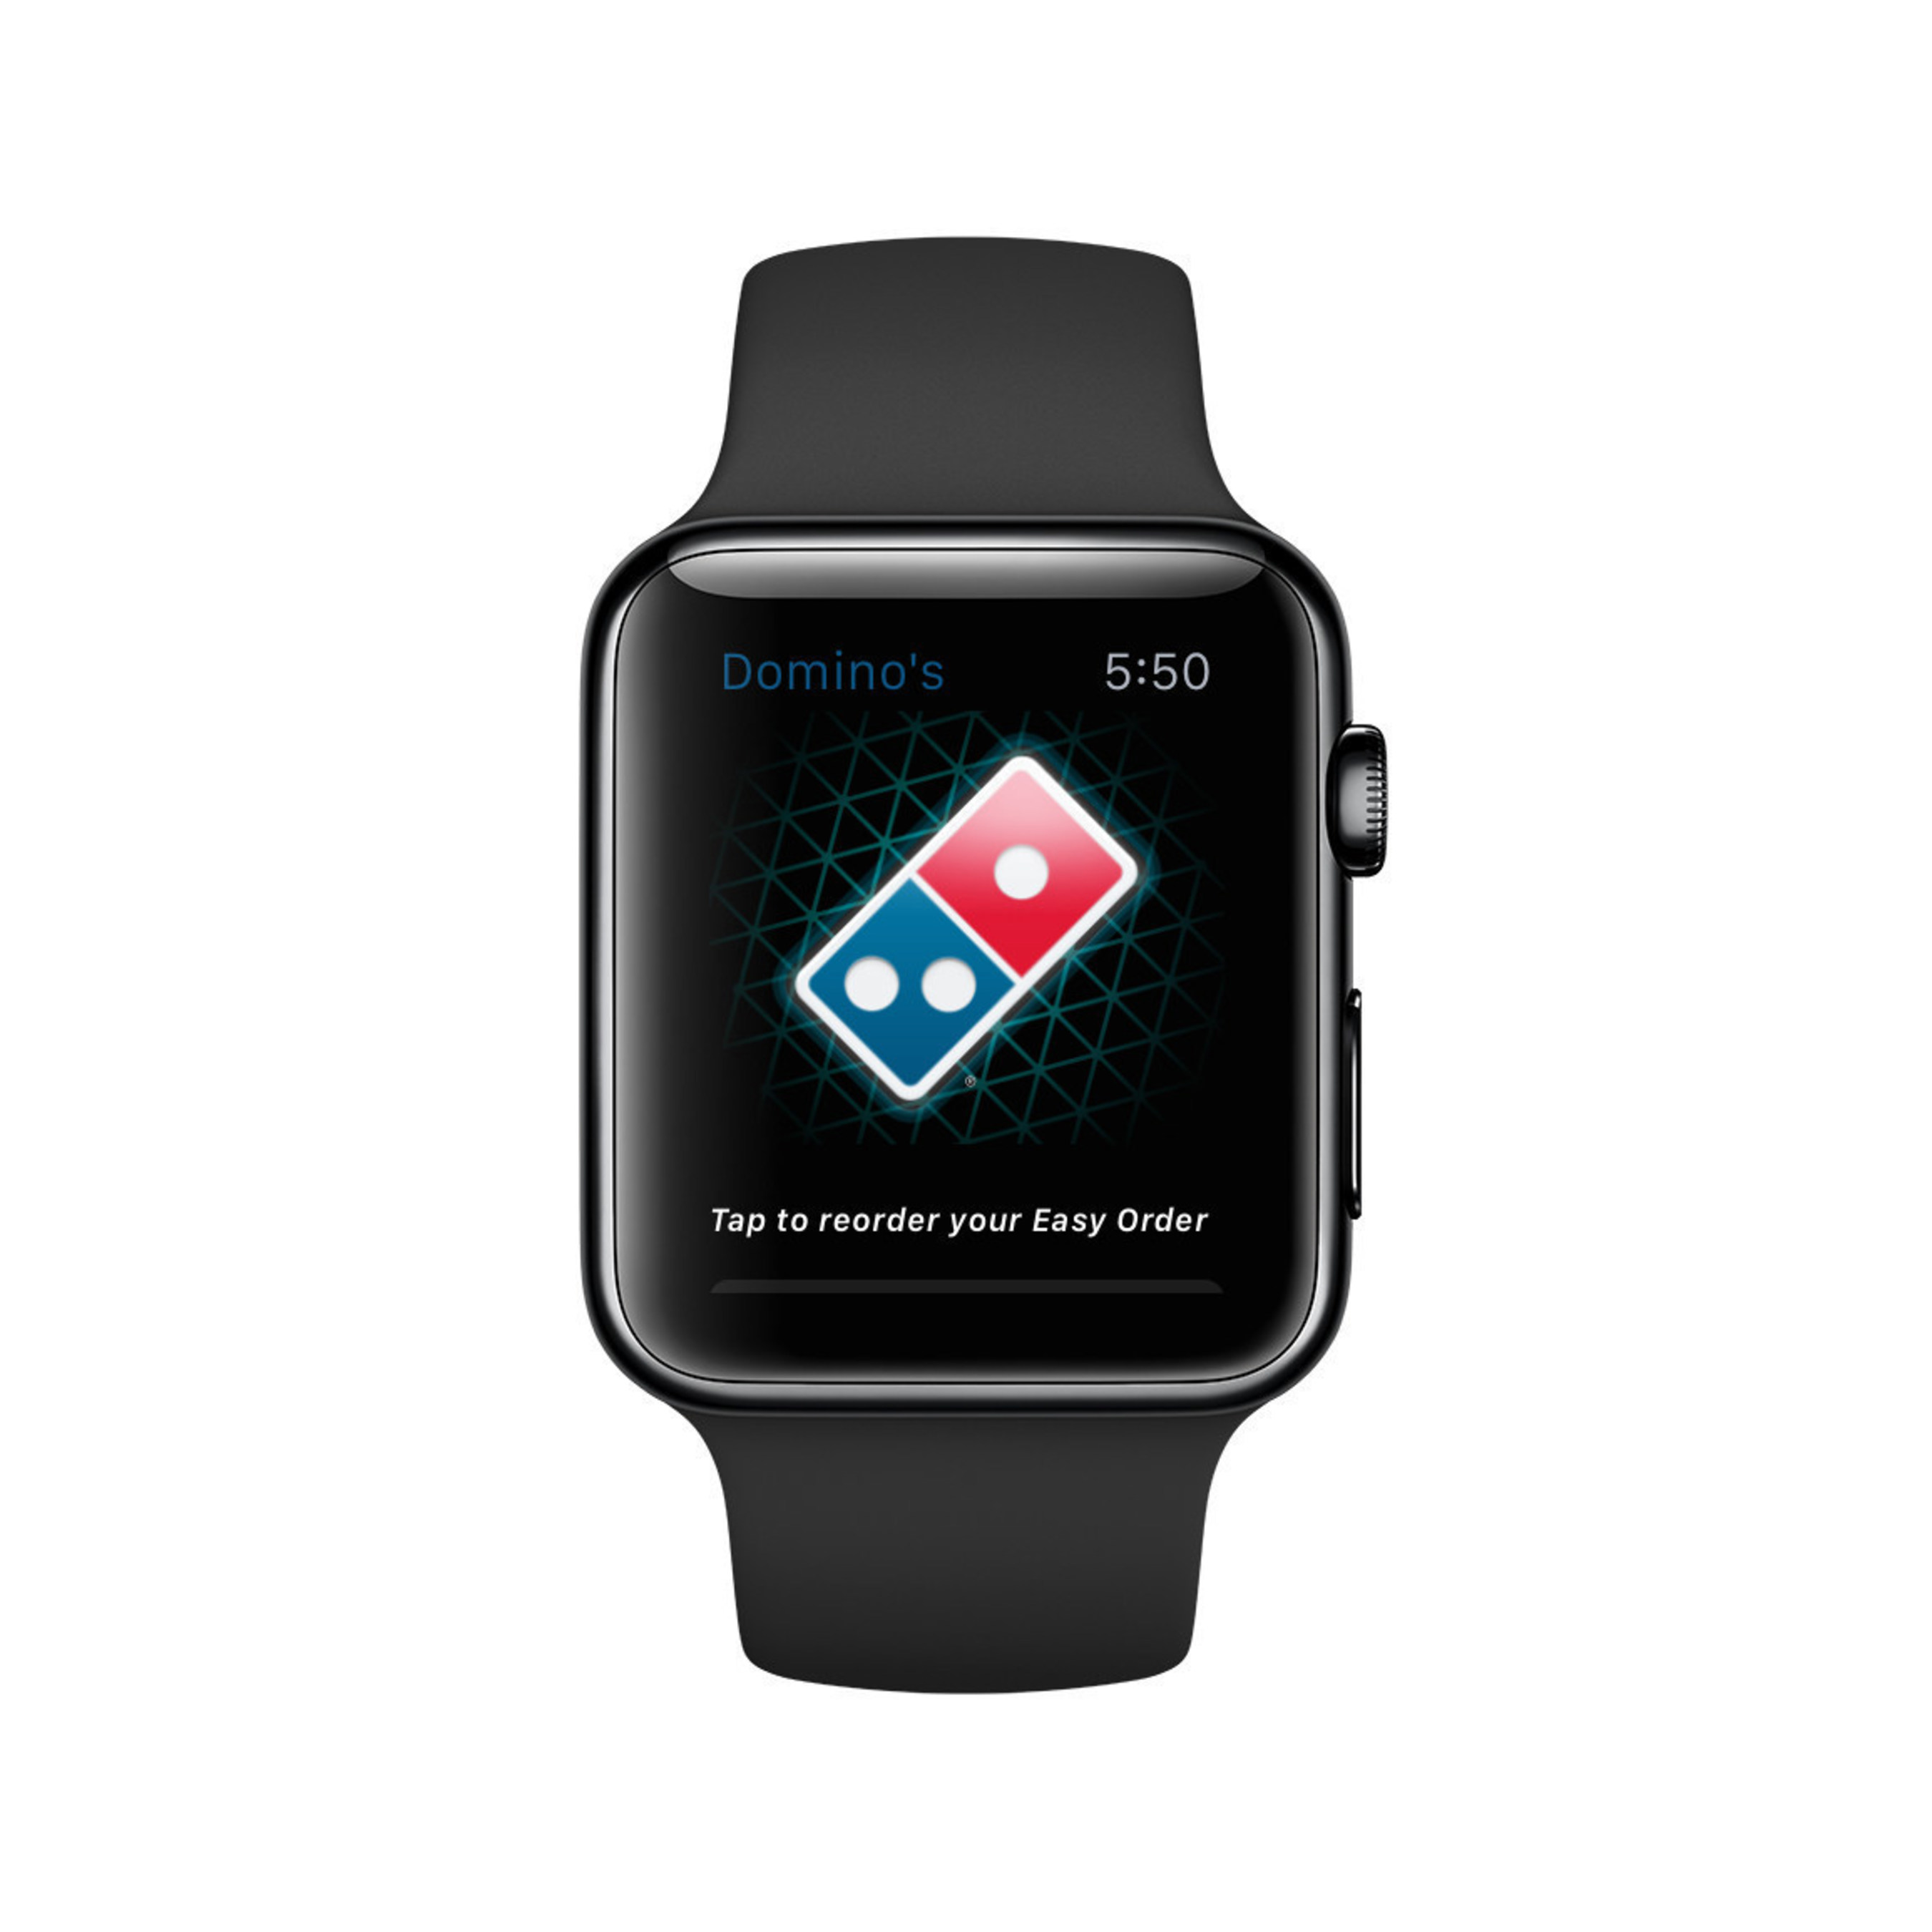 Domino's is adding Apple Watch to its lineup of ordering capabilities beginning today.